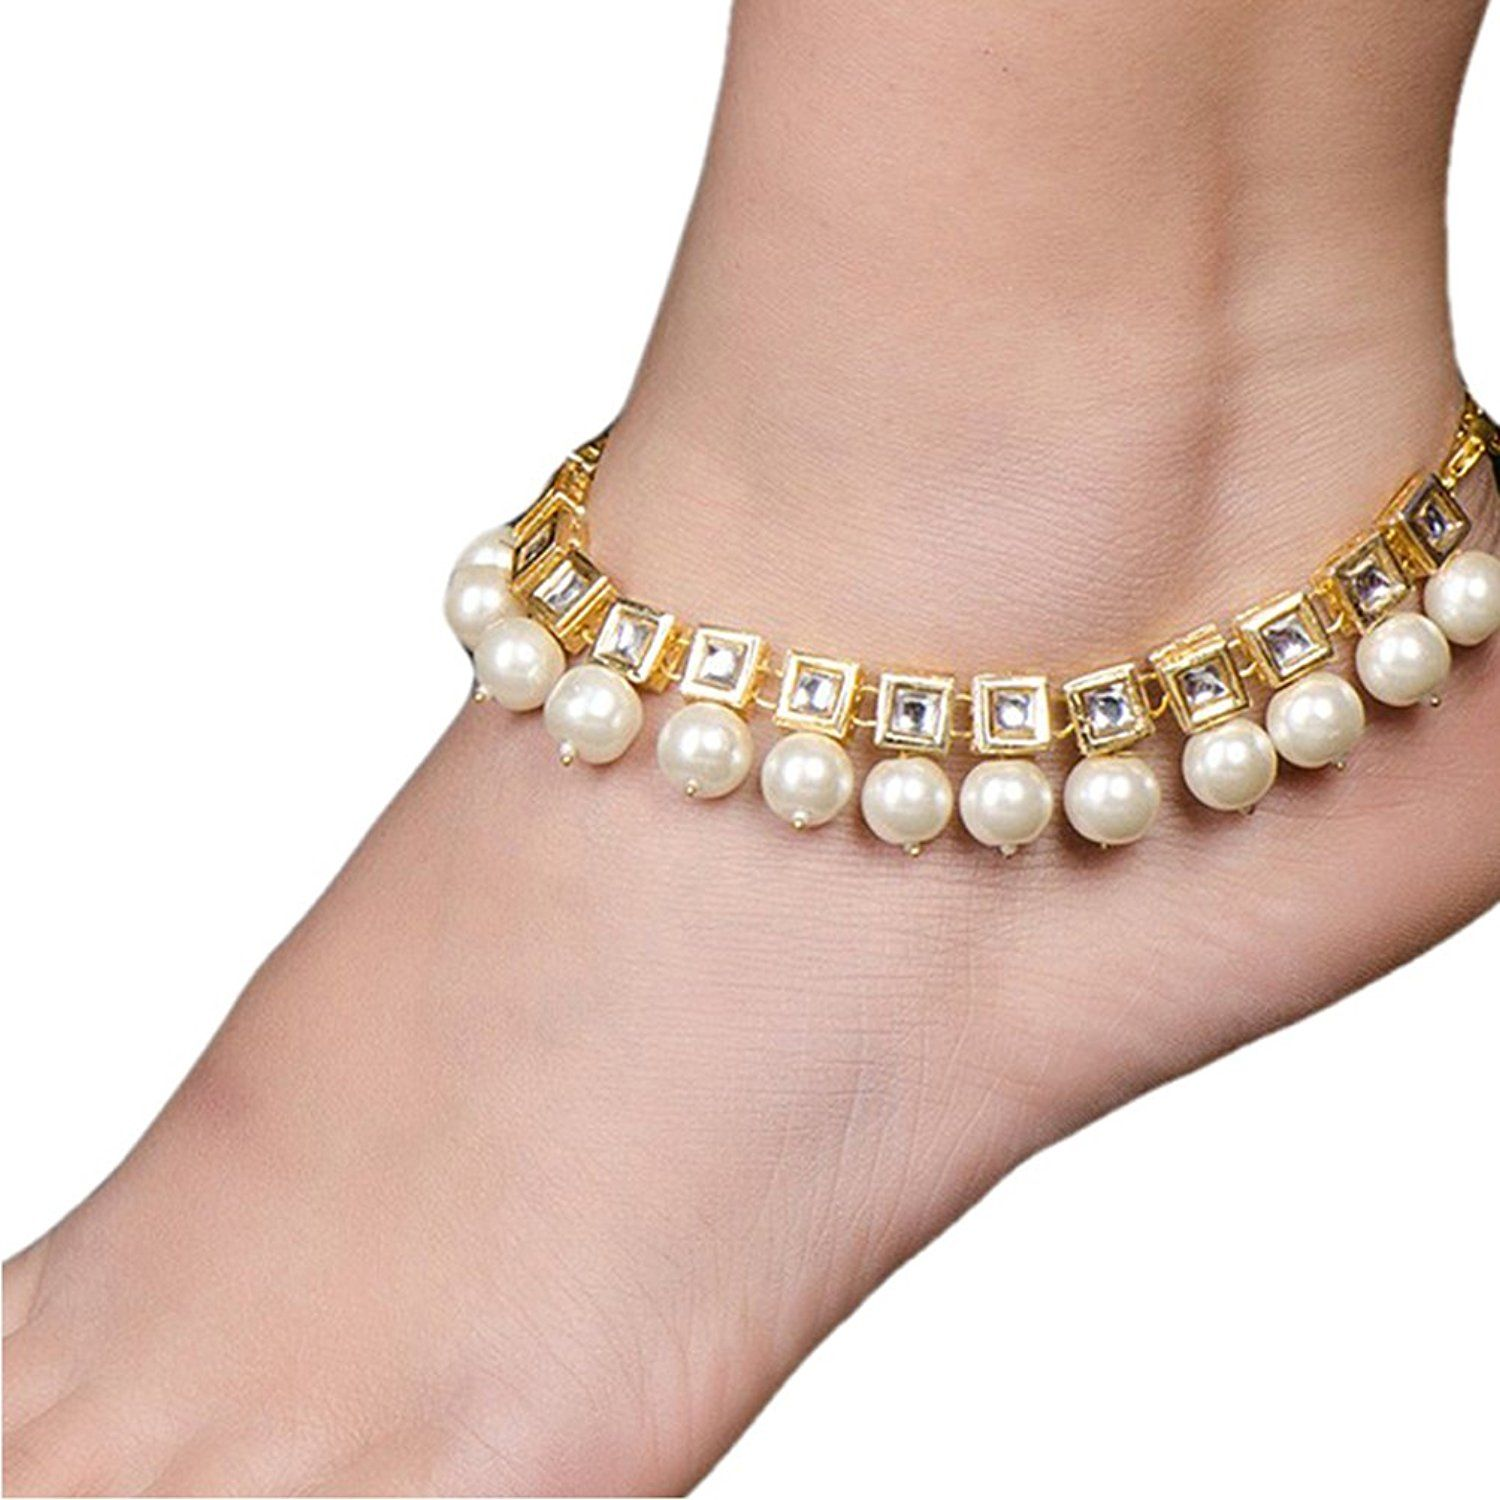 jewelry bare hippie feet toe sandal foot decoration anklet barefoot wedding store accessories thong sexy shoes brown bridal